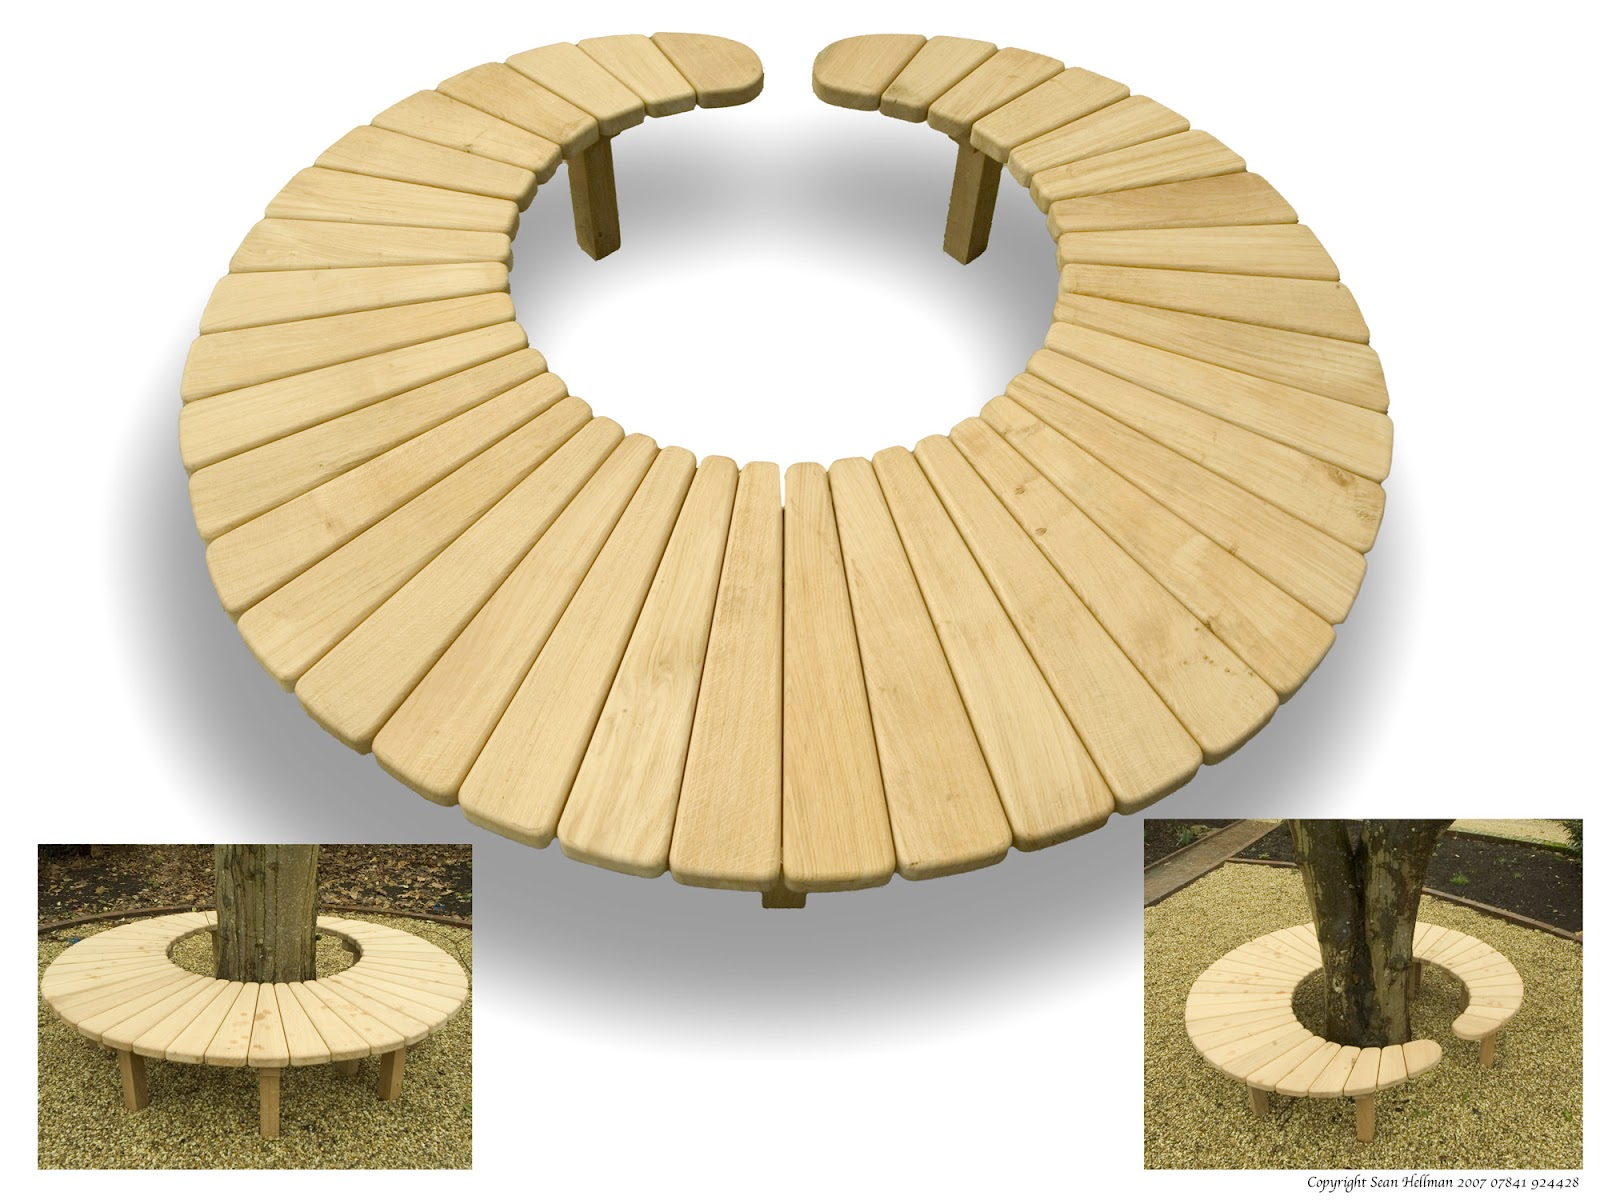 Sean Hellman Circular Bench For Merton College Oxford